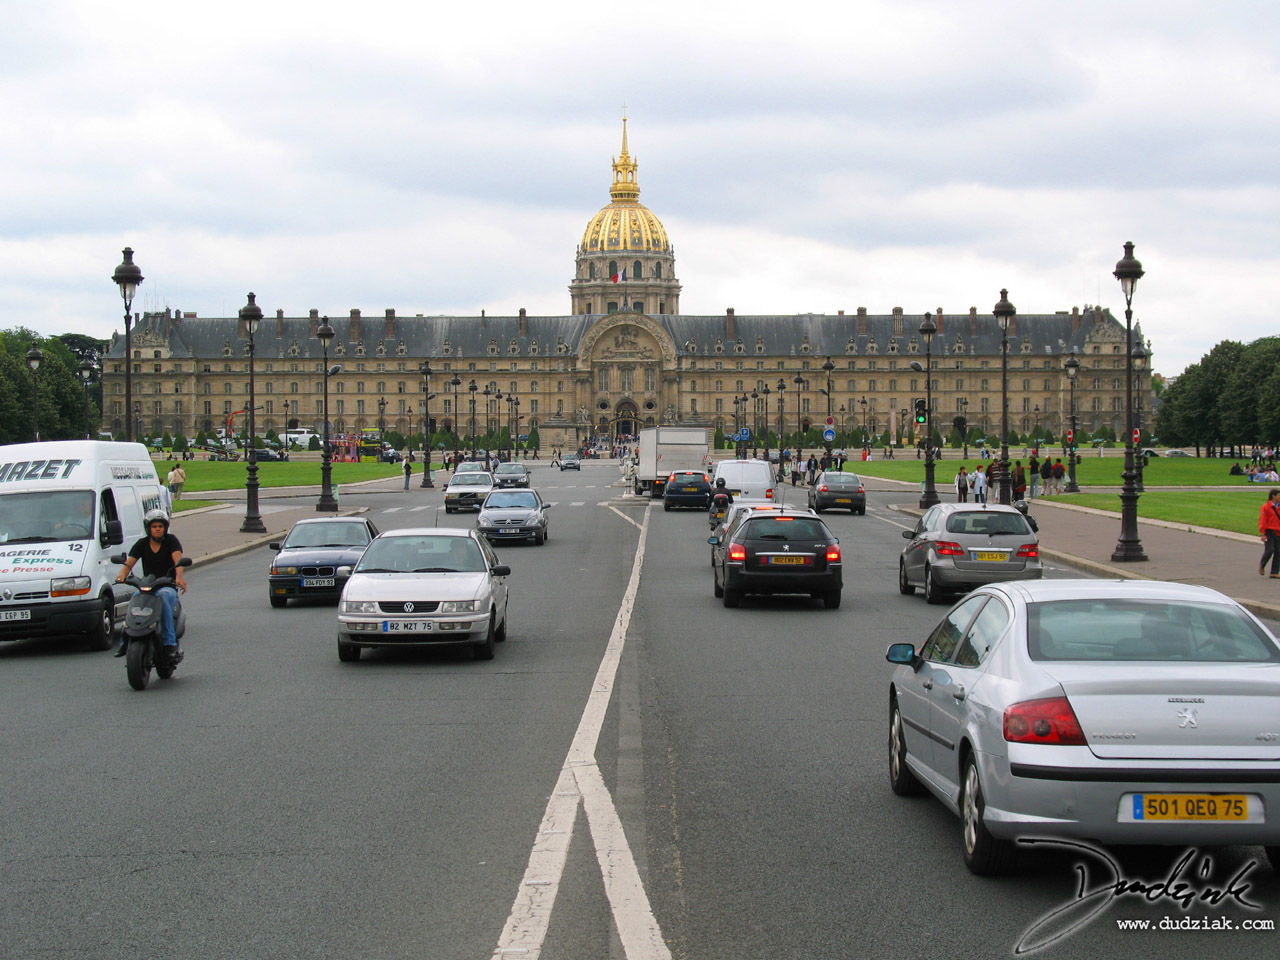 Paris France,  Avenue de General Galland,  Military Museum,  Les Invalides